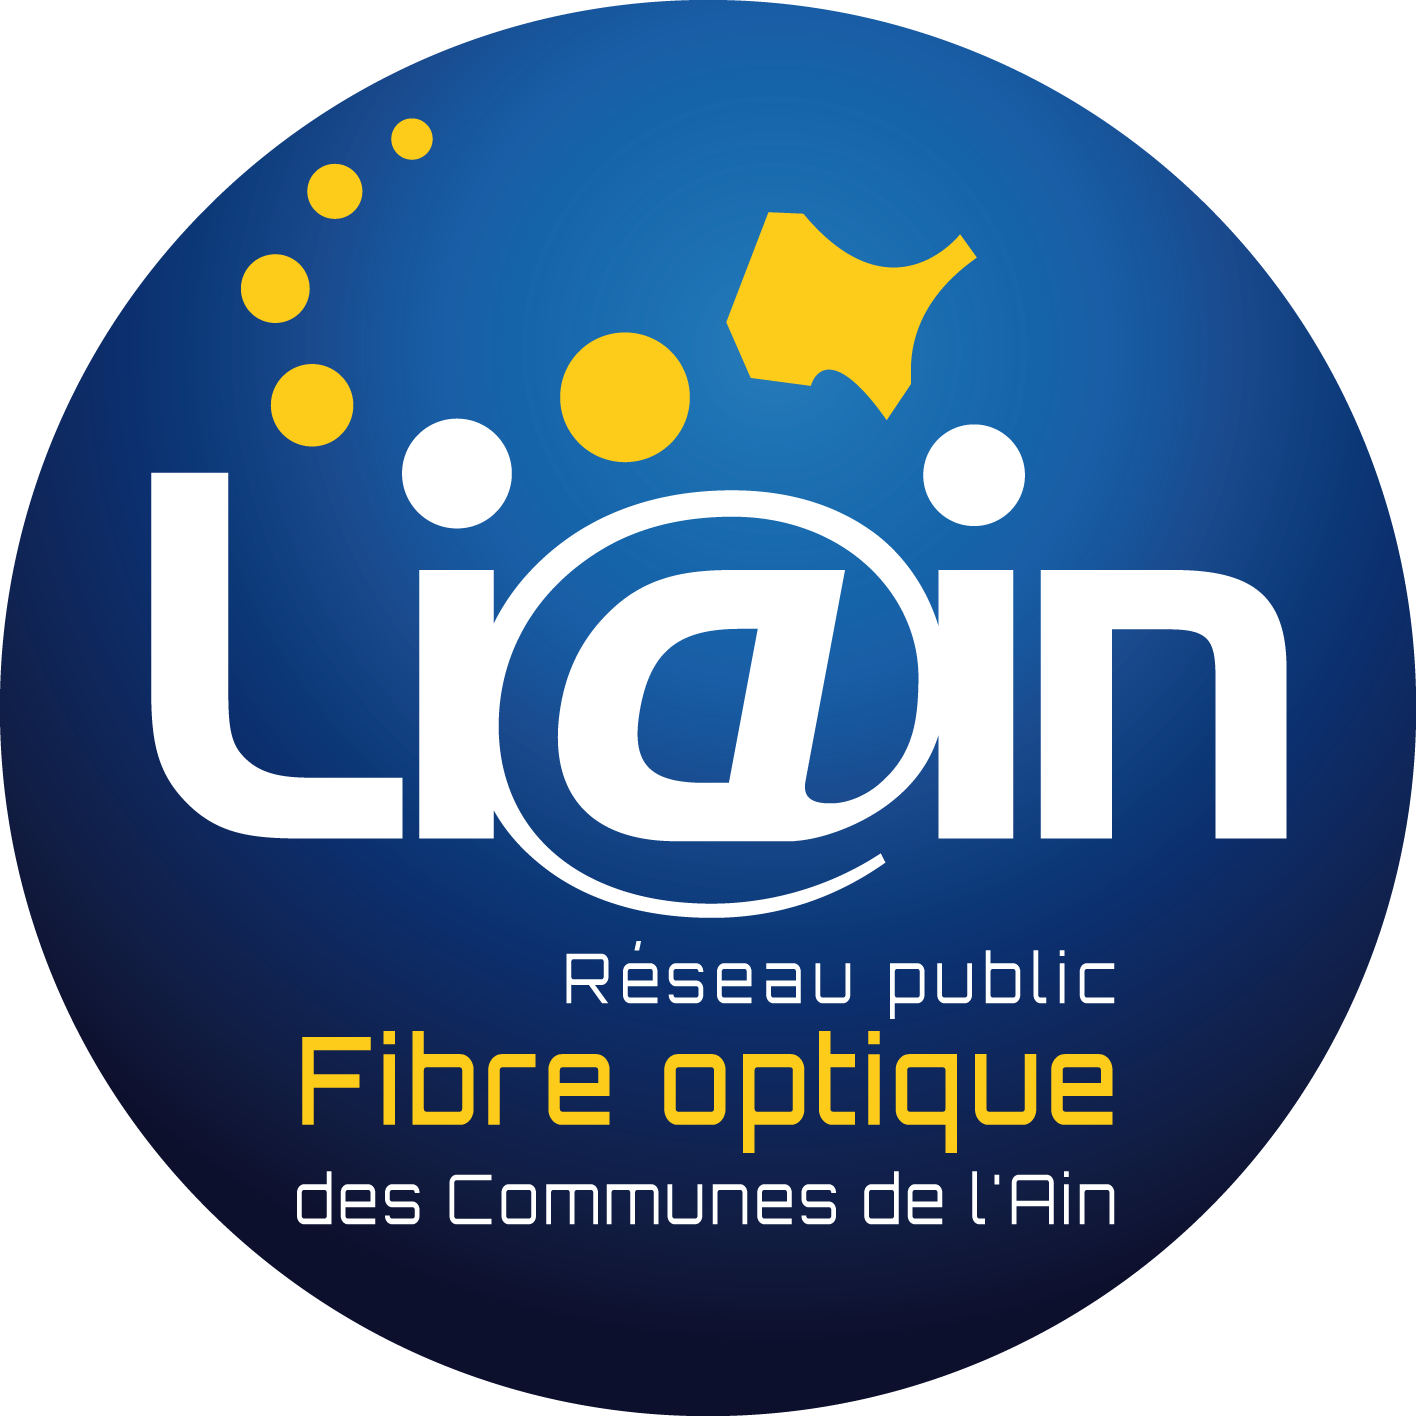 Liain logo.png